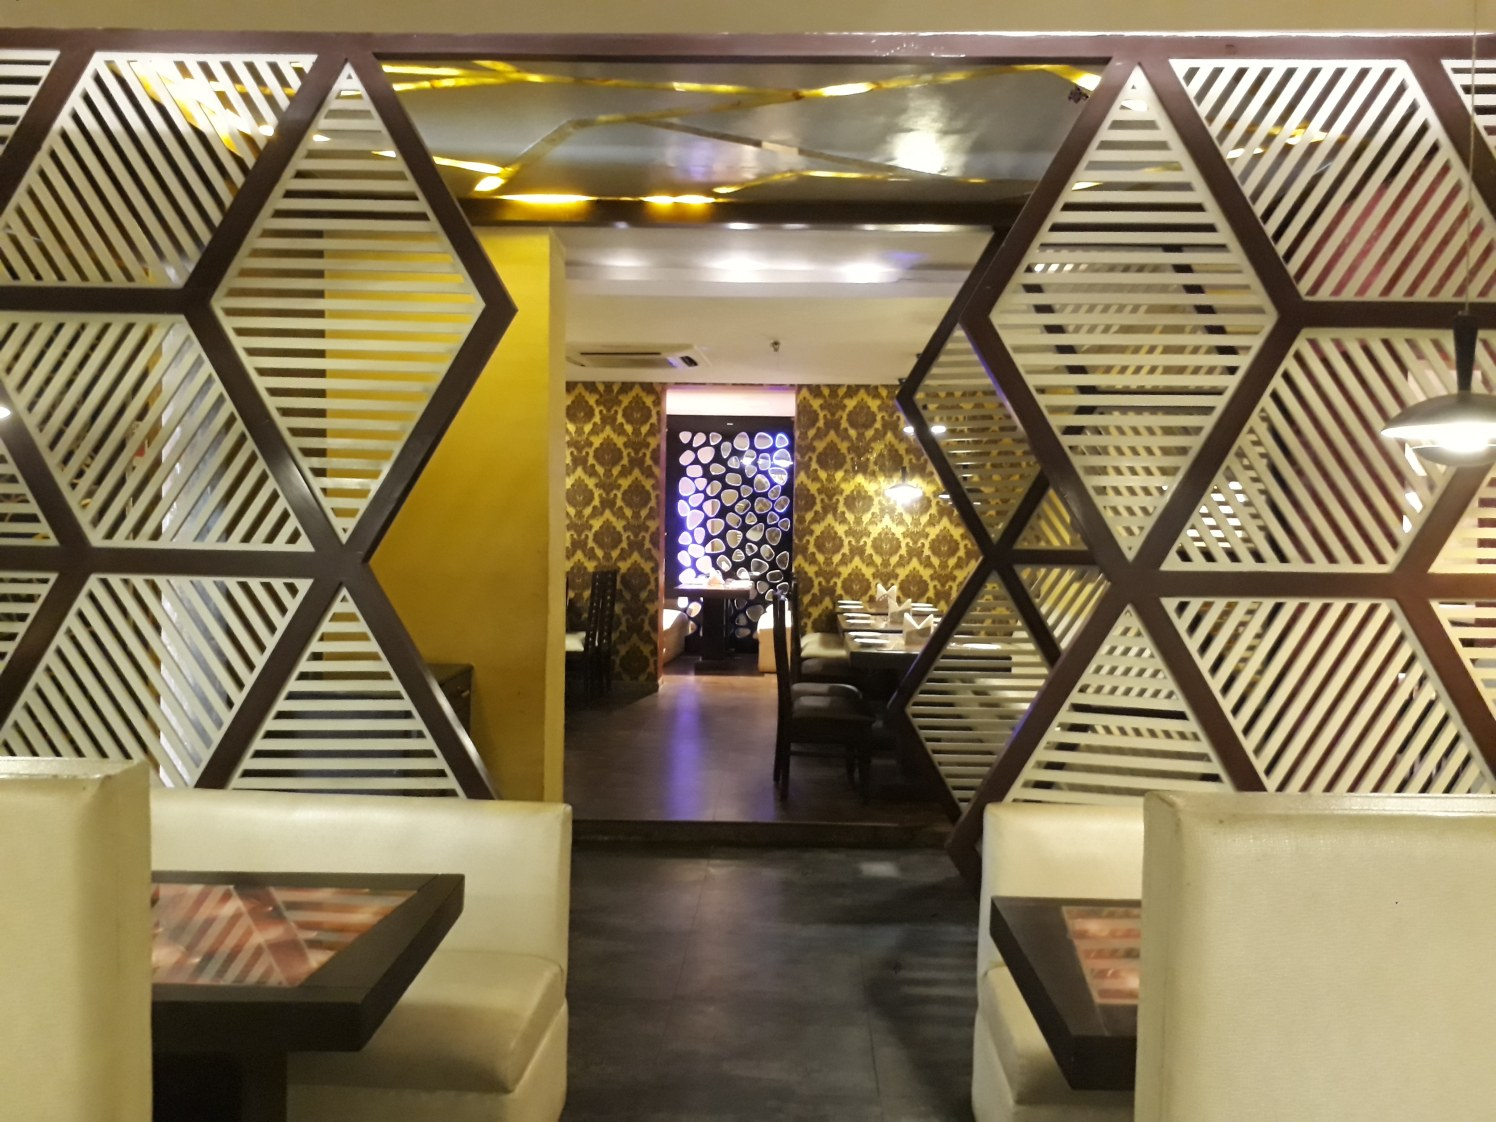 QUIRKY YET SOPHISTICATED by Shailash Pandita Contemporary | Interior Design Photos & Ideas